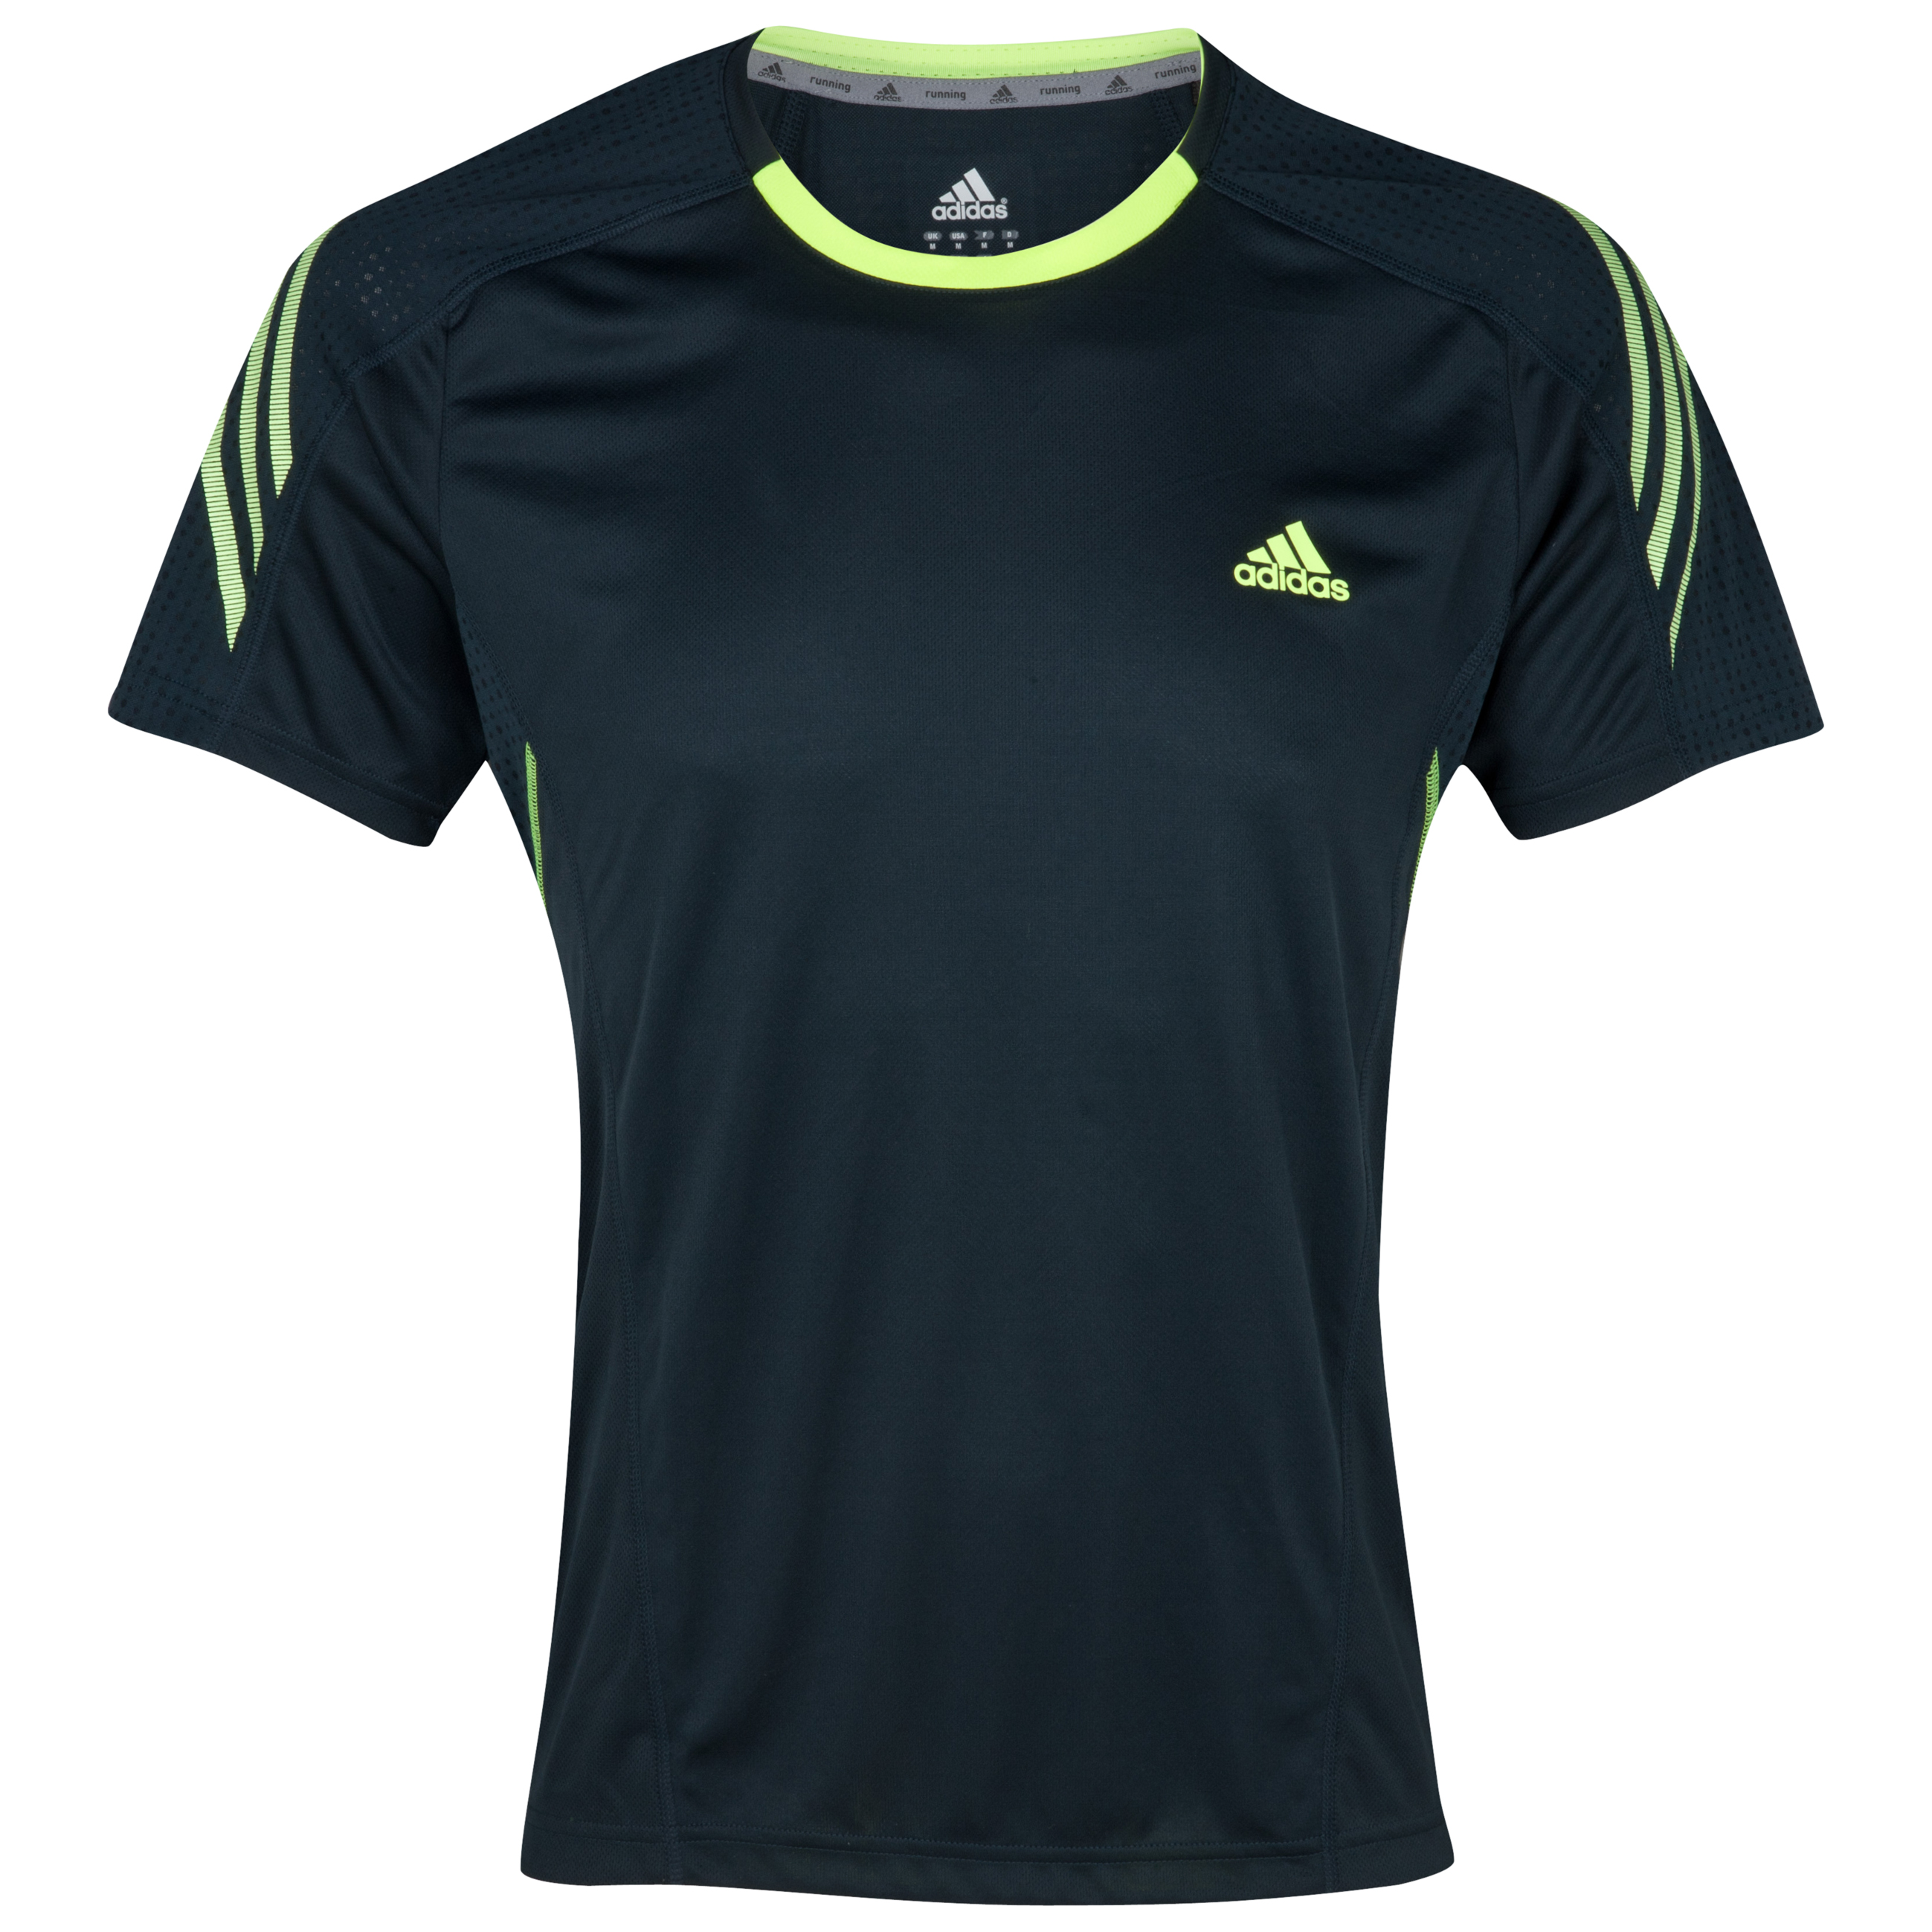 Adidas Supernova T-Shirt - Tech Onix/Electricity